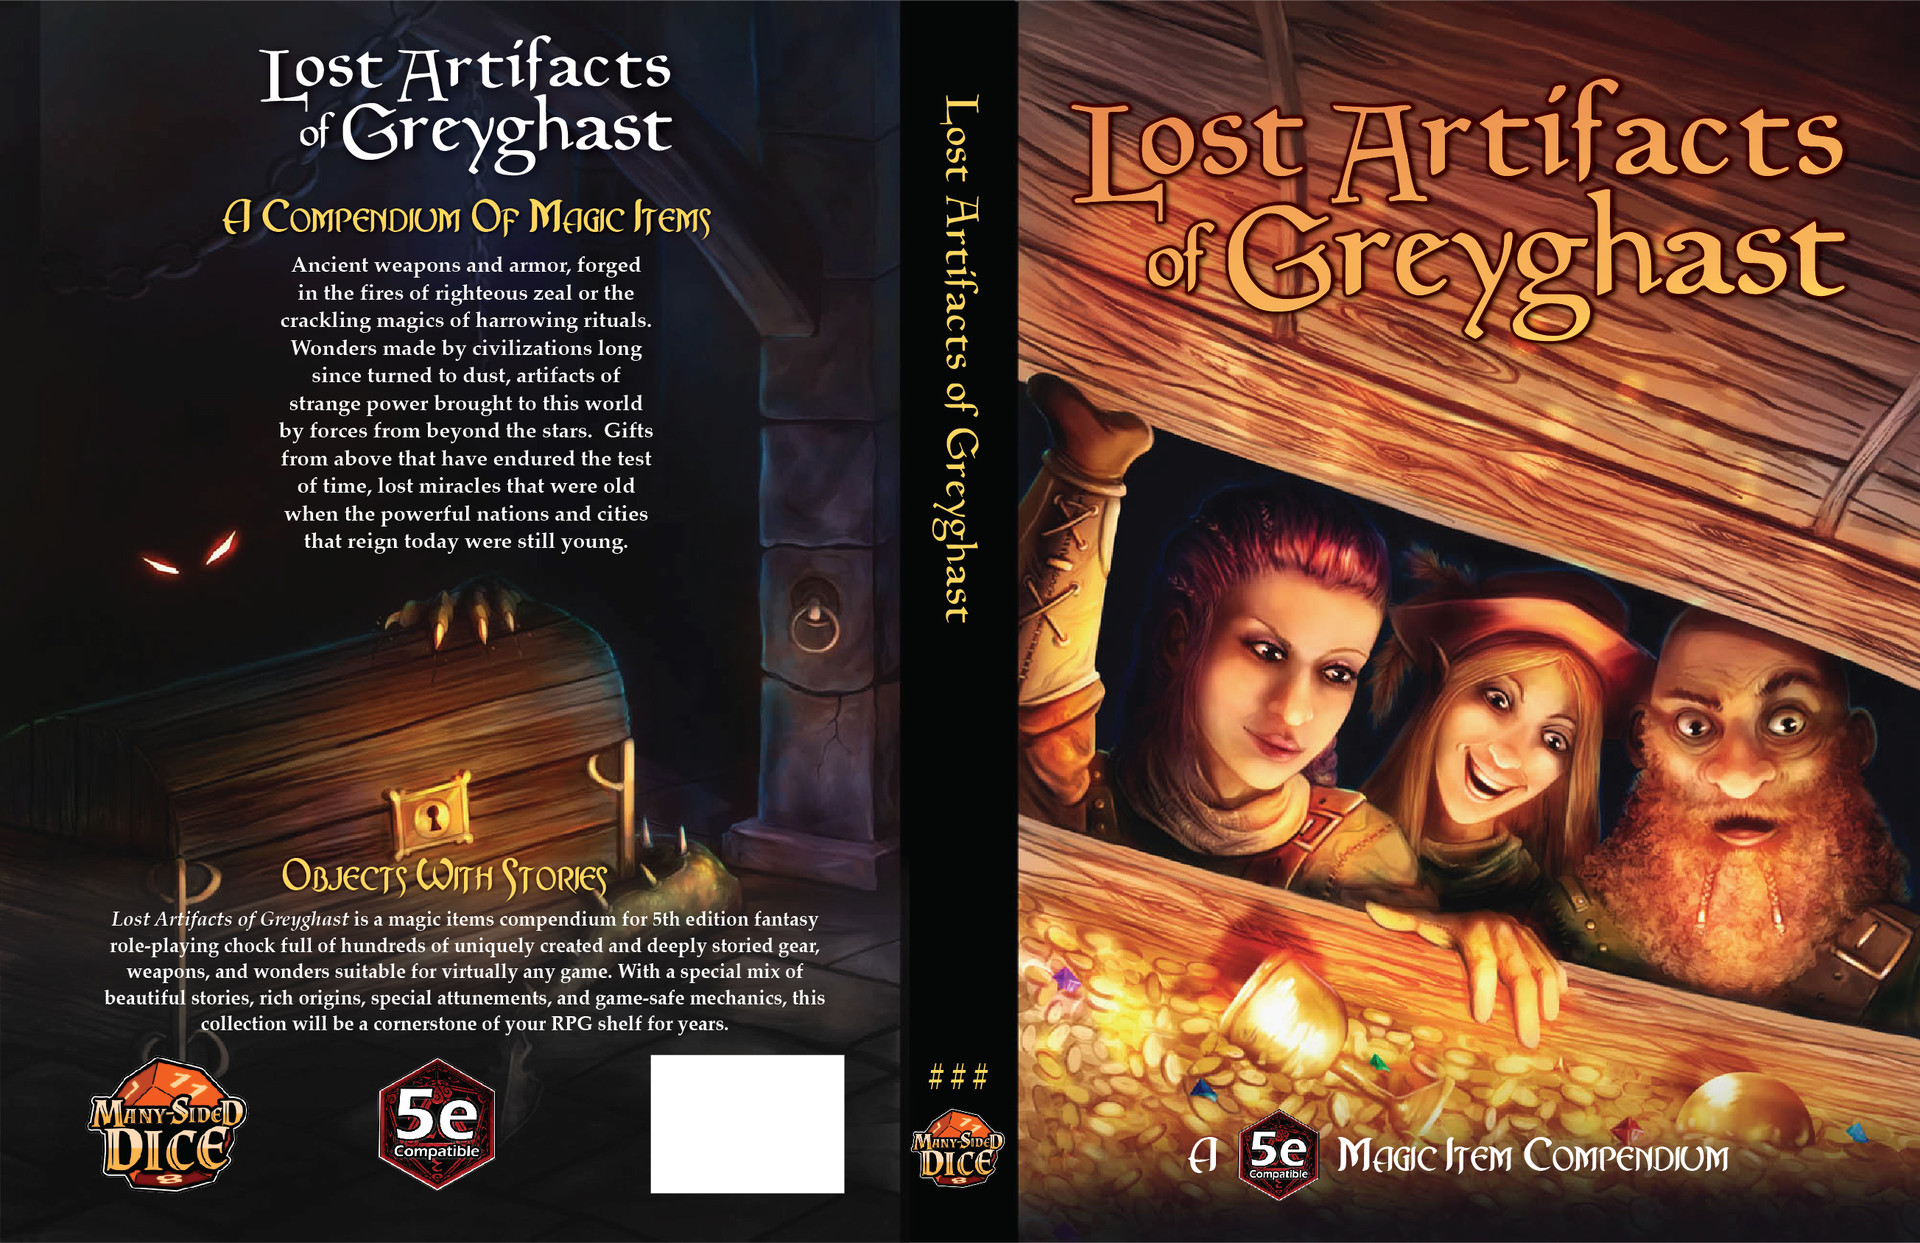 Katy grierson grayghast cover mockup color 03